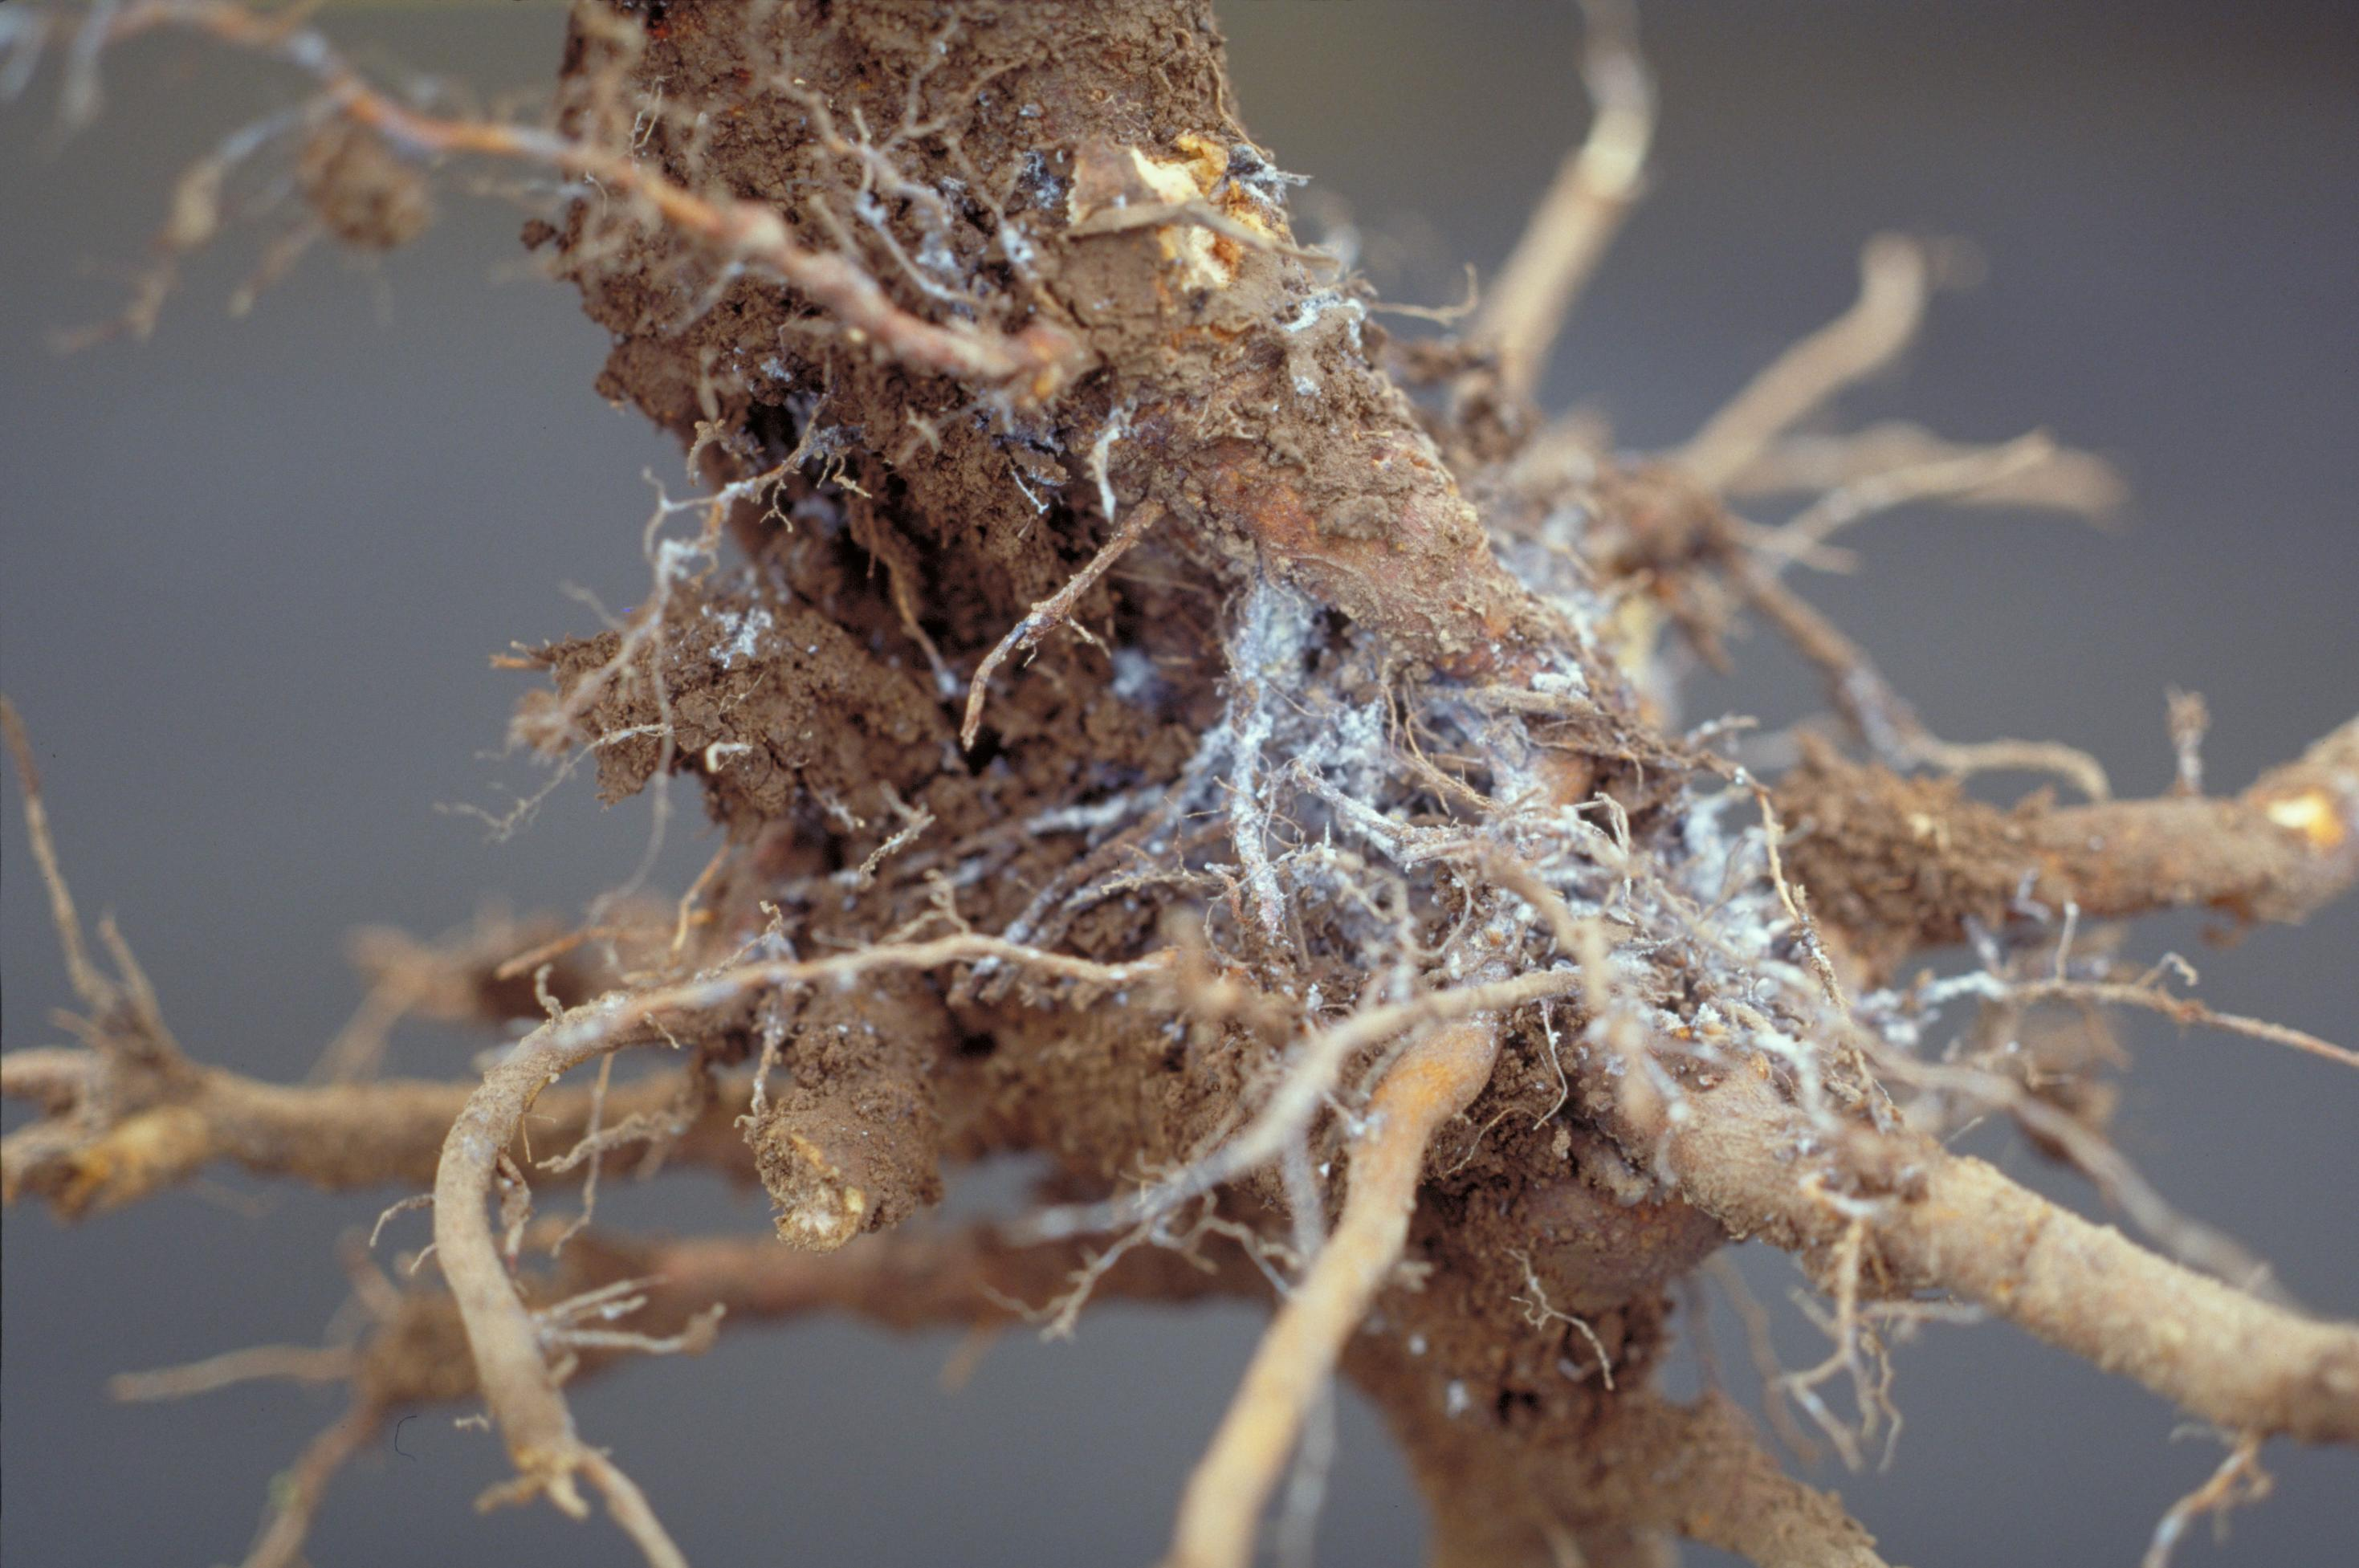 Woolly apple aphid on roots (Bessin, UKY)